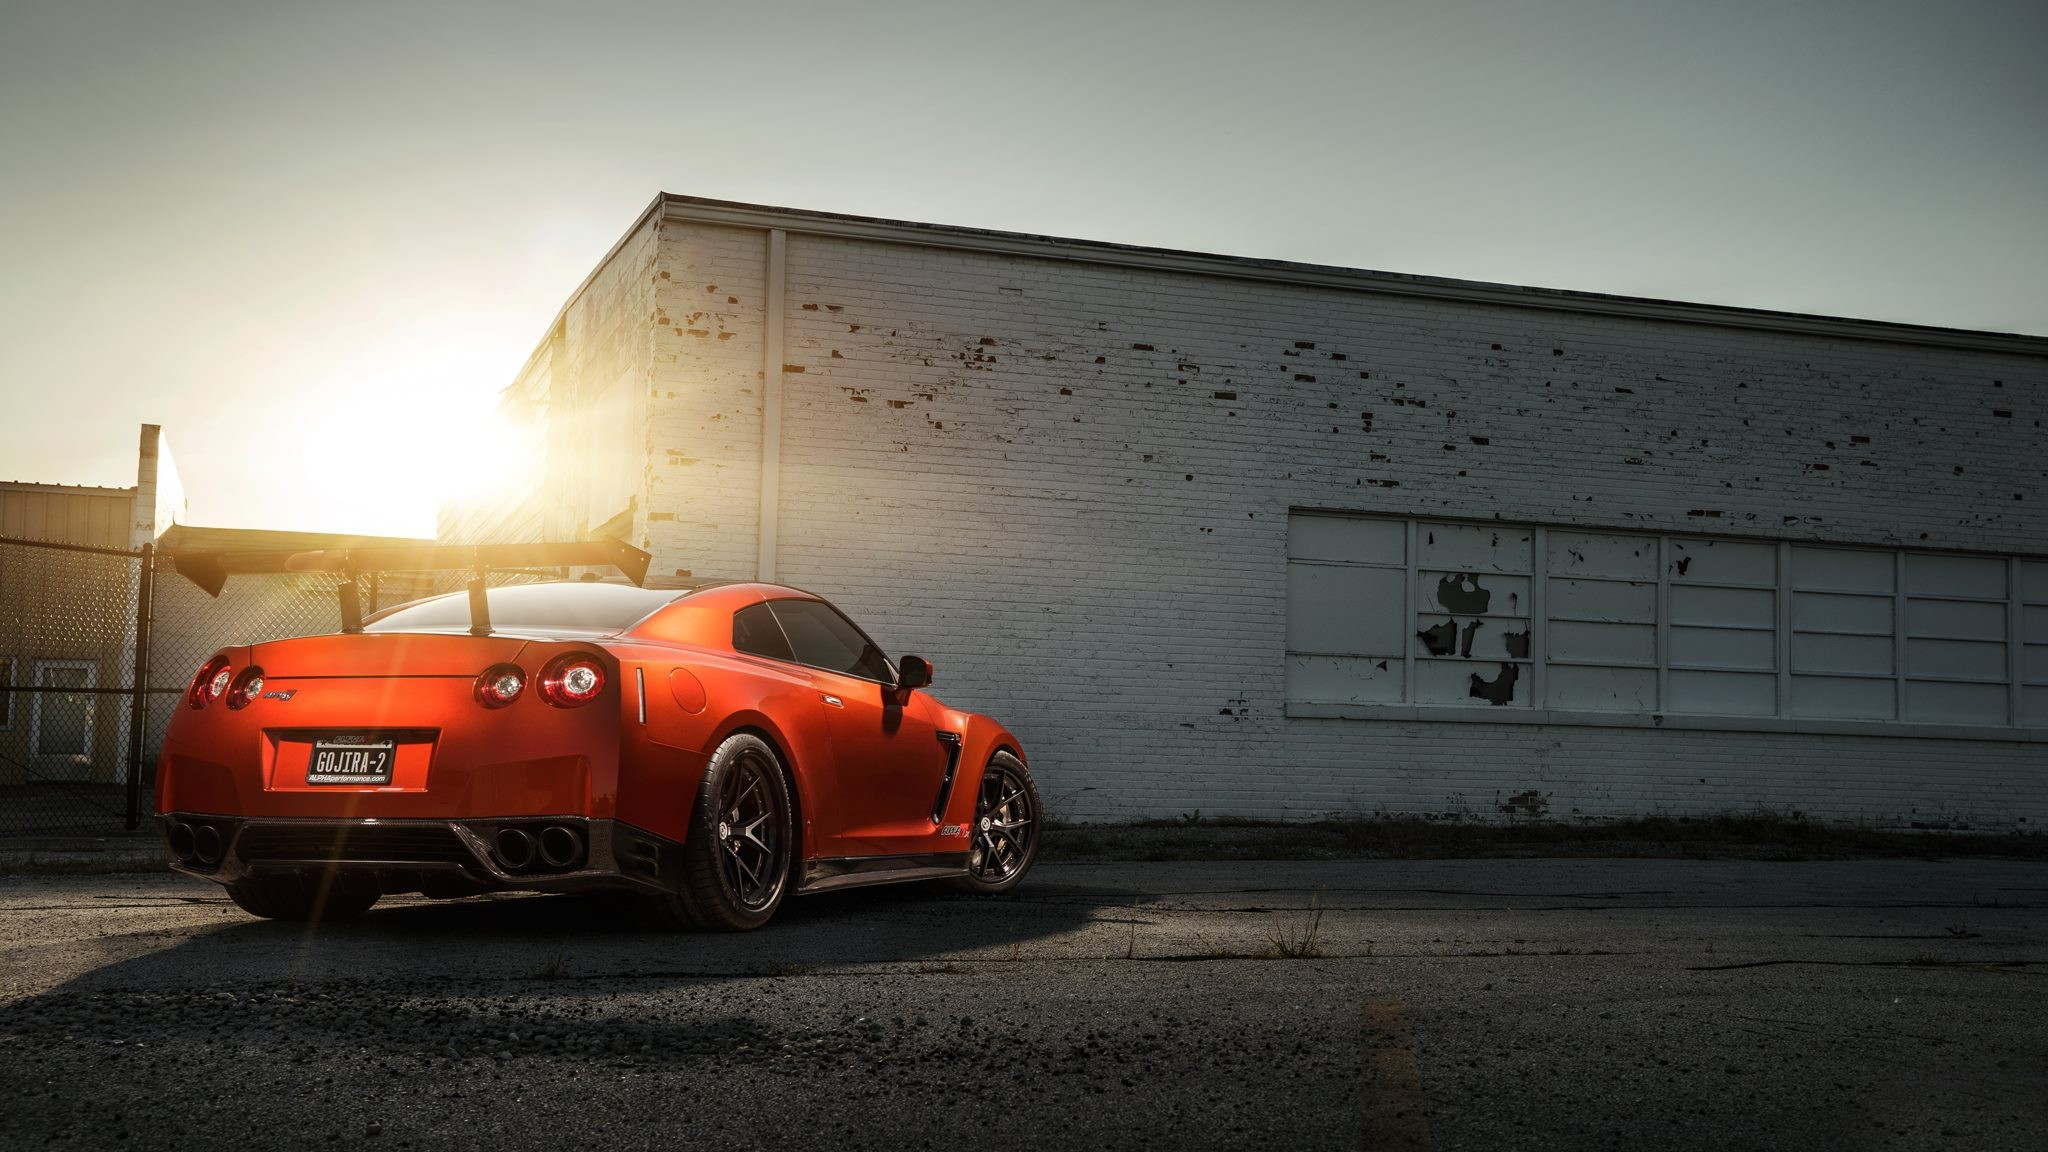 243 nissan-gtr-wallpapers, cars-wallpapers, nissan-wallpapers